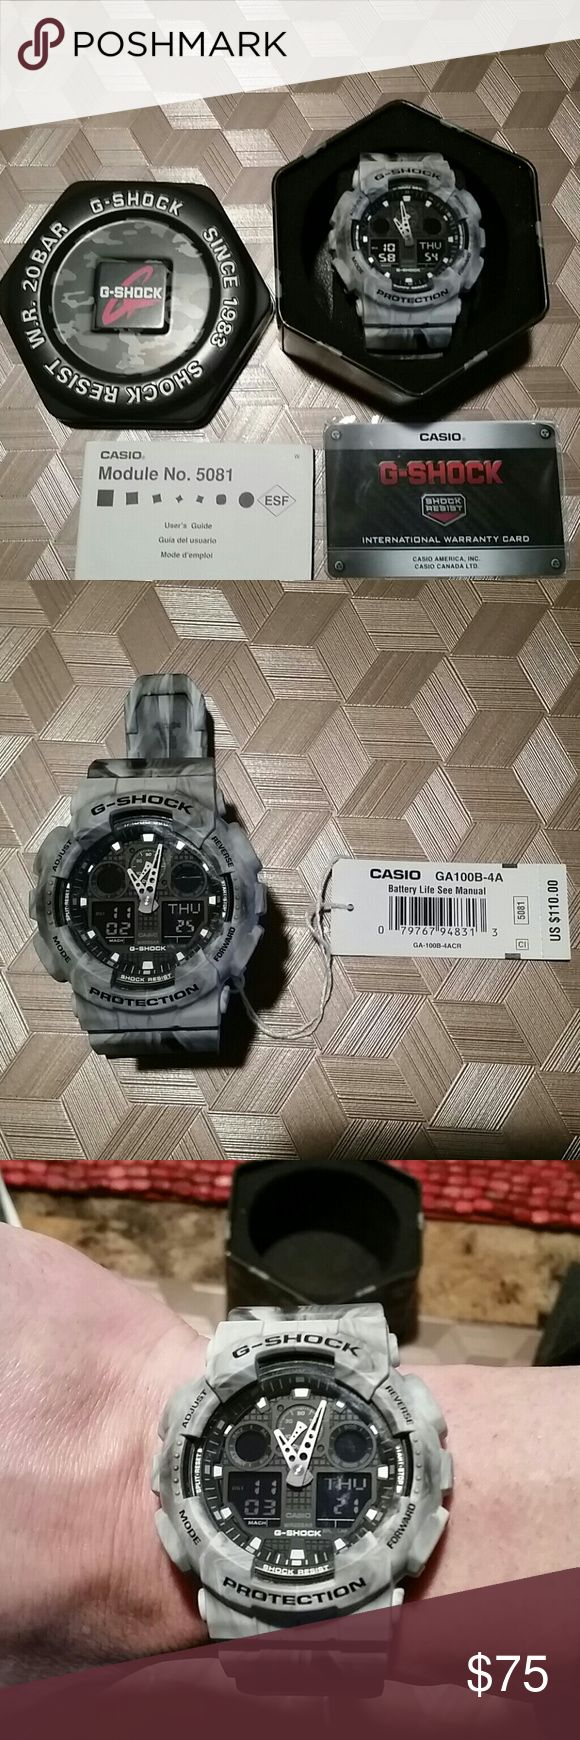 Casio G-Shock XL Watch The watch is white and gray, it's a smoked color. It's an XL faced Casio G-Shock watch the face is 52 mm in size. It comes in the original case, it was never worn! G-Shock Accessories Watches